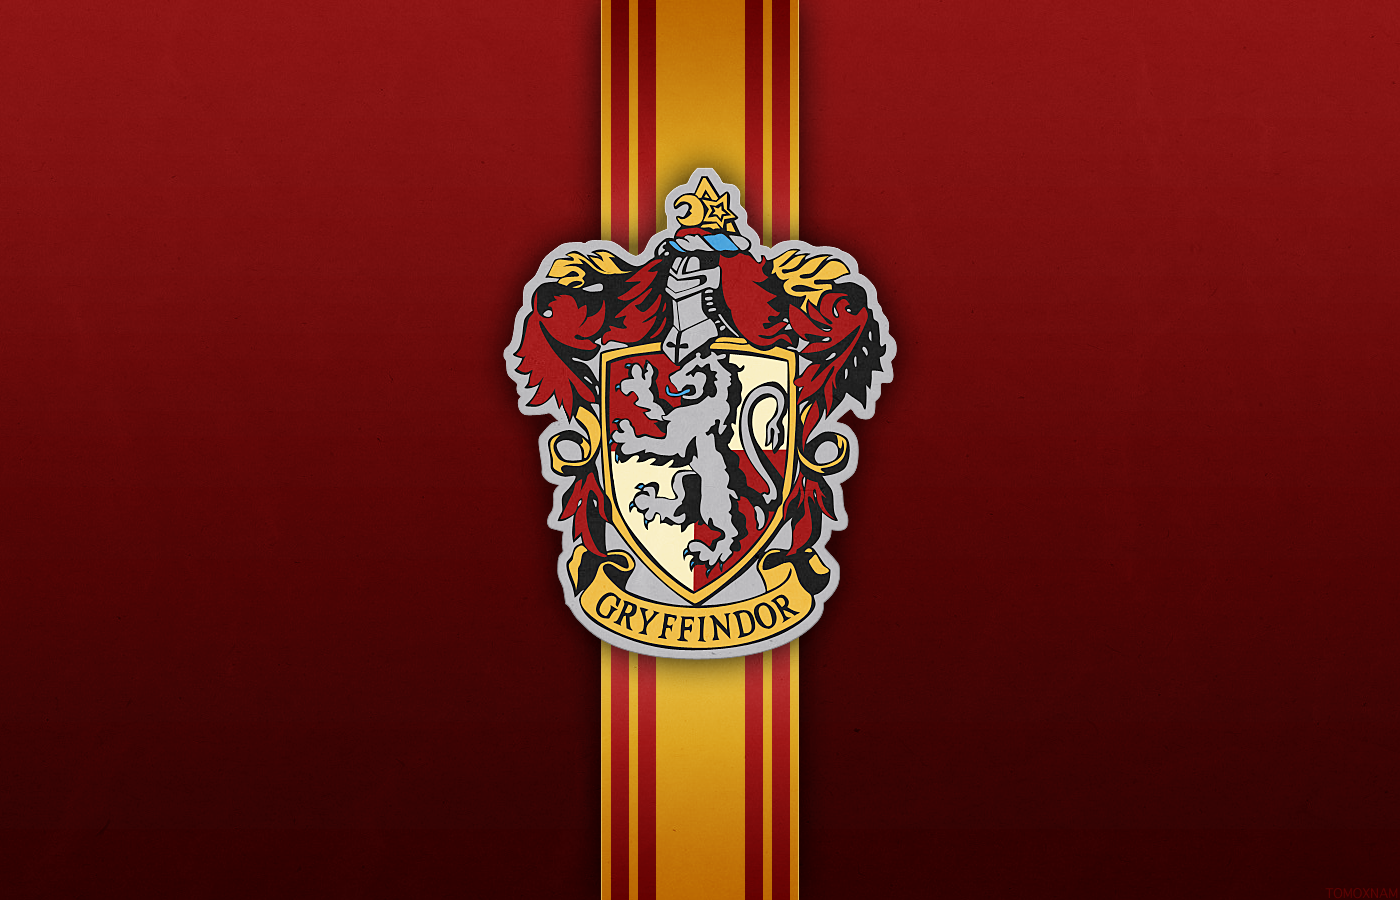 Free Download Gryffindor Wallpapers 1400x900 For Your